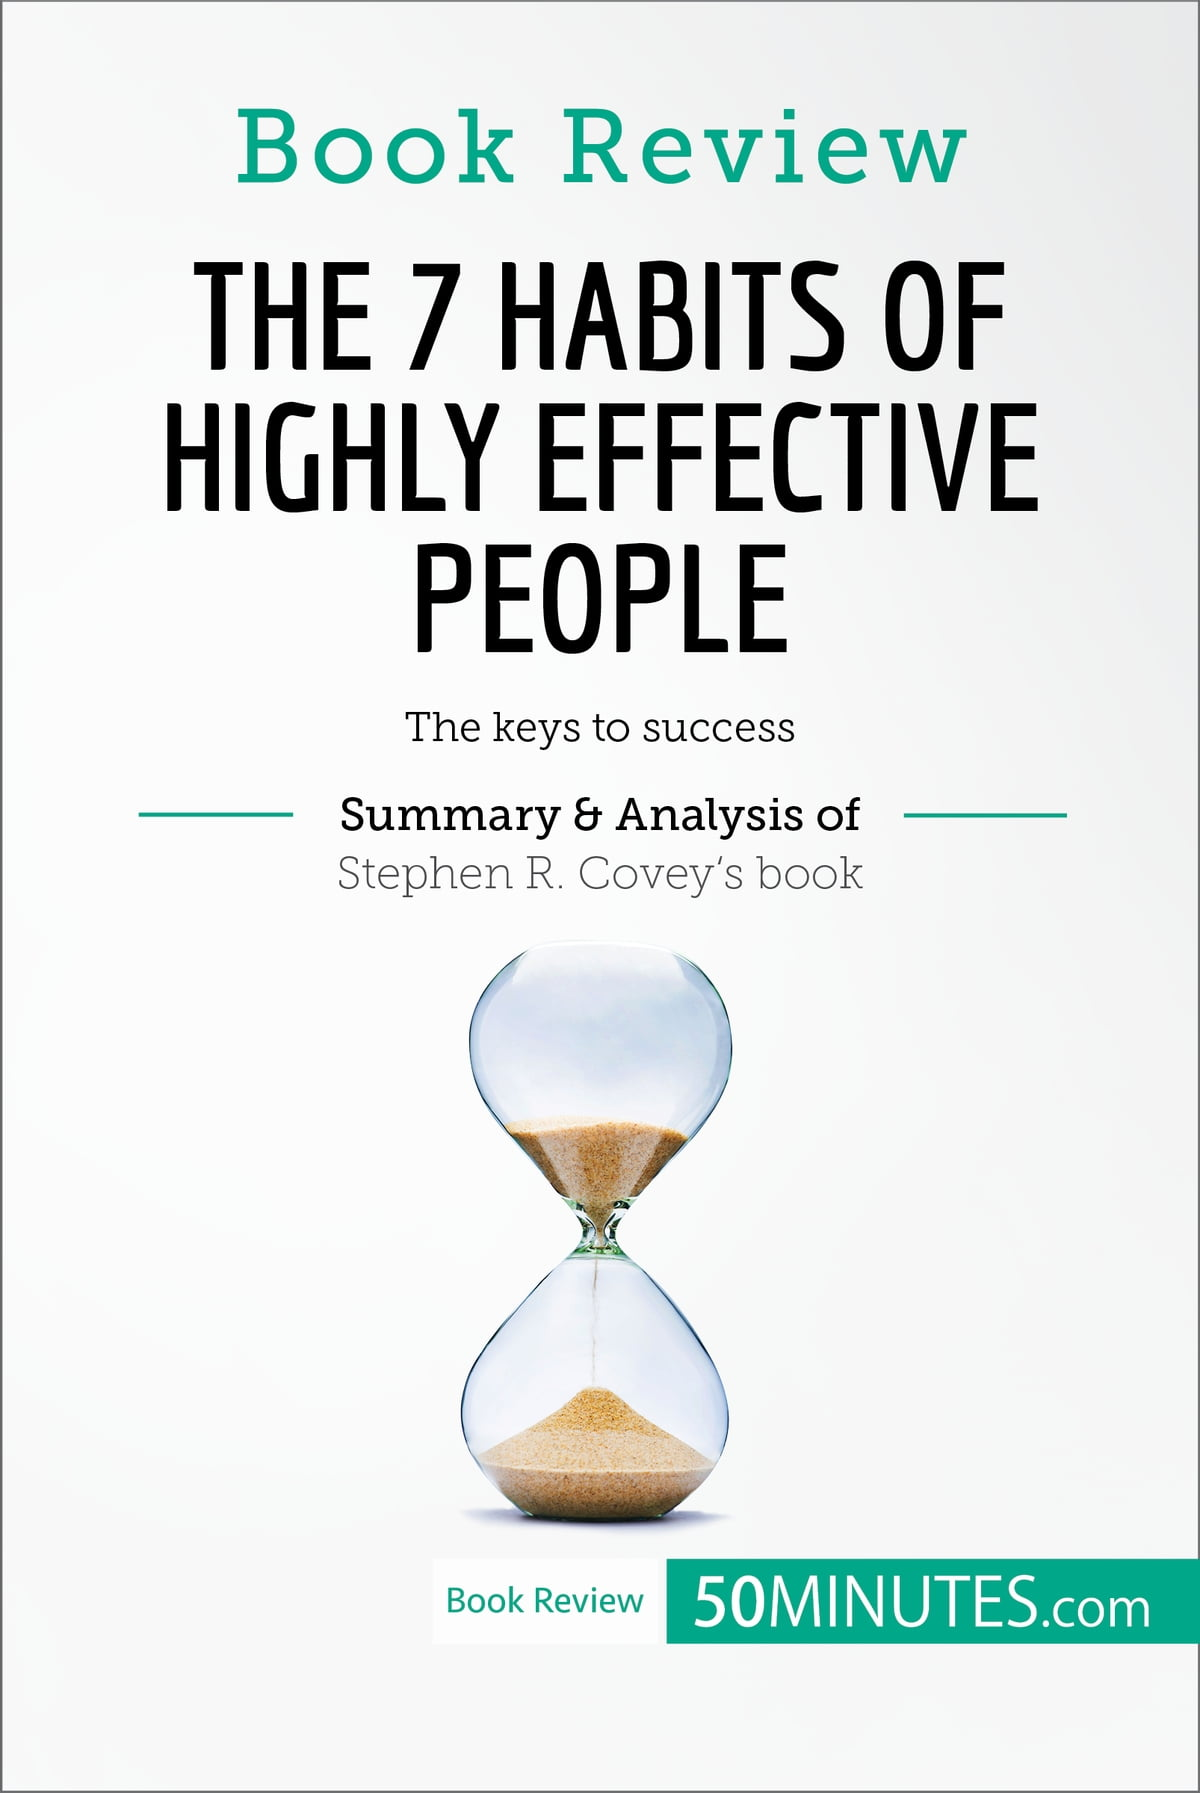 Best Motivation Blog What Are The 7 Habits Of Highly